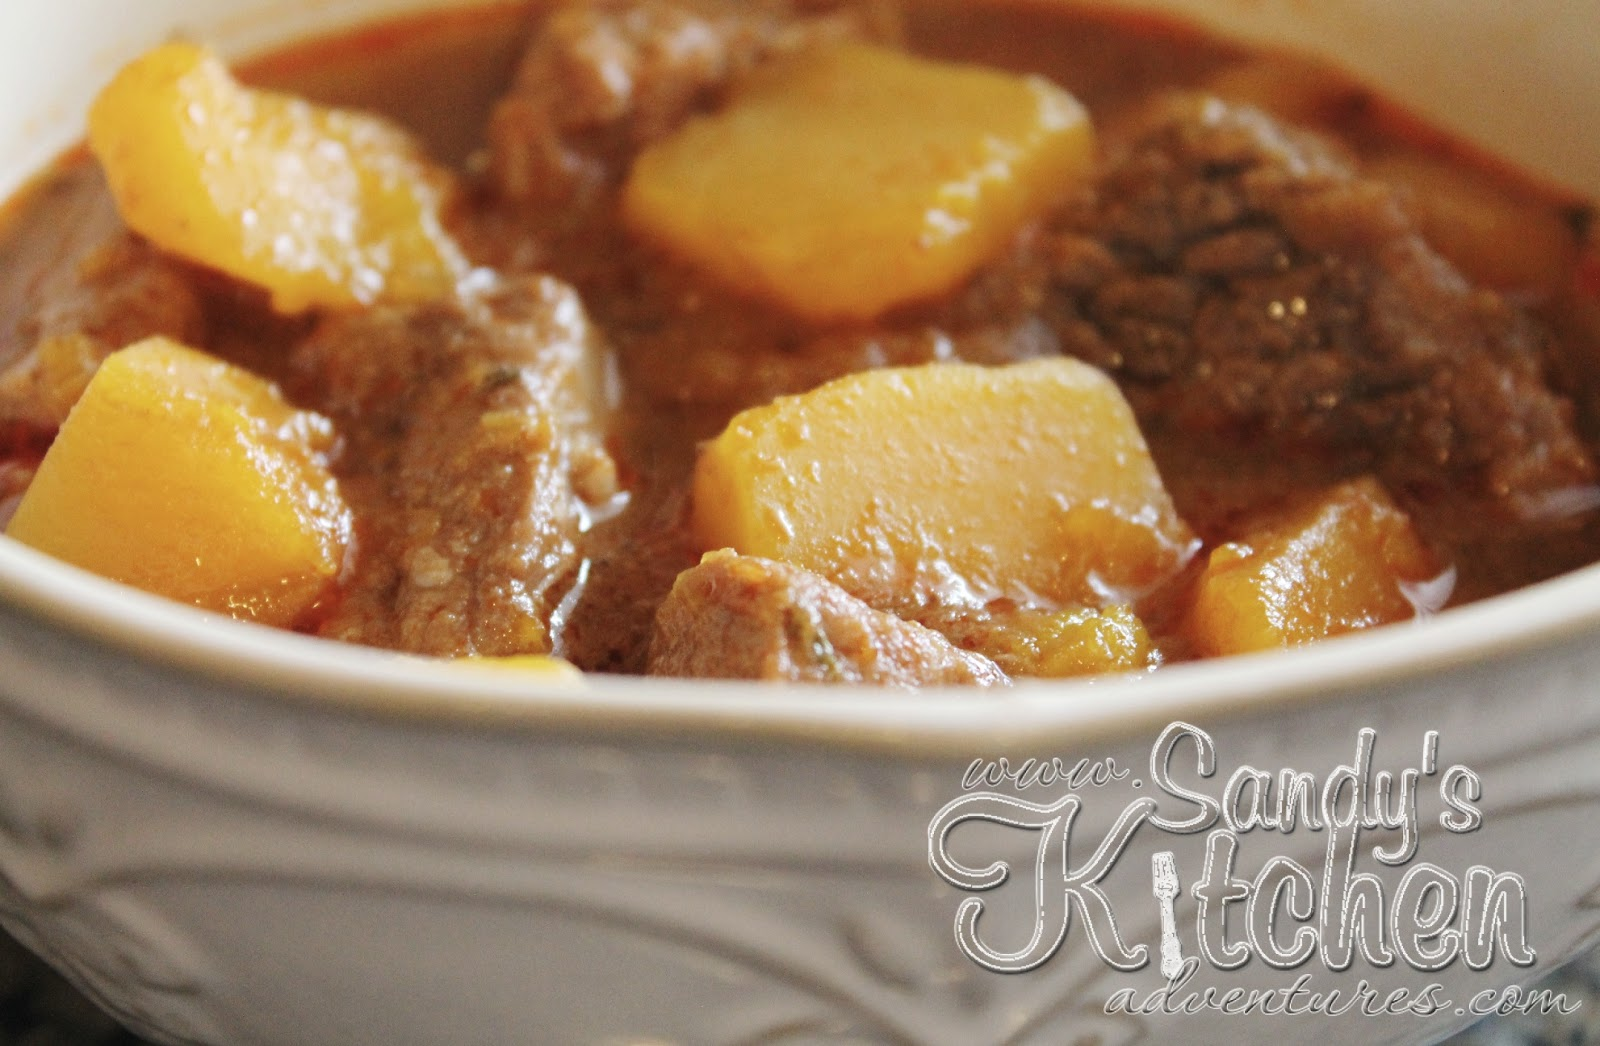 One Of My Favorite Soups Is A Rich Hearty Beef Stew That Is Full Of Flavor I Love Making My Beef Stew With Lots Of White Potatoes Sweet Potatoes